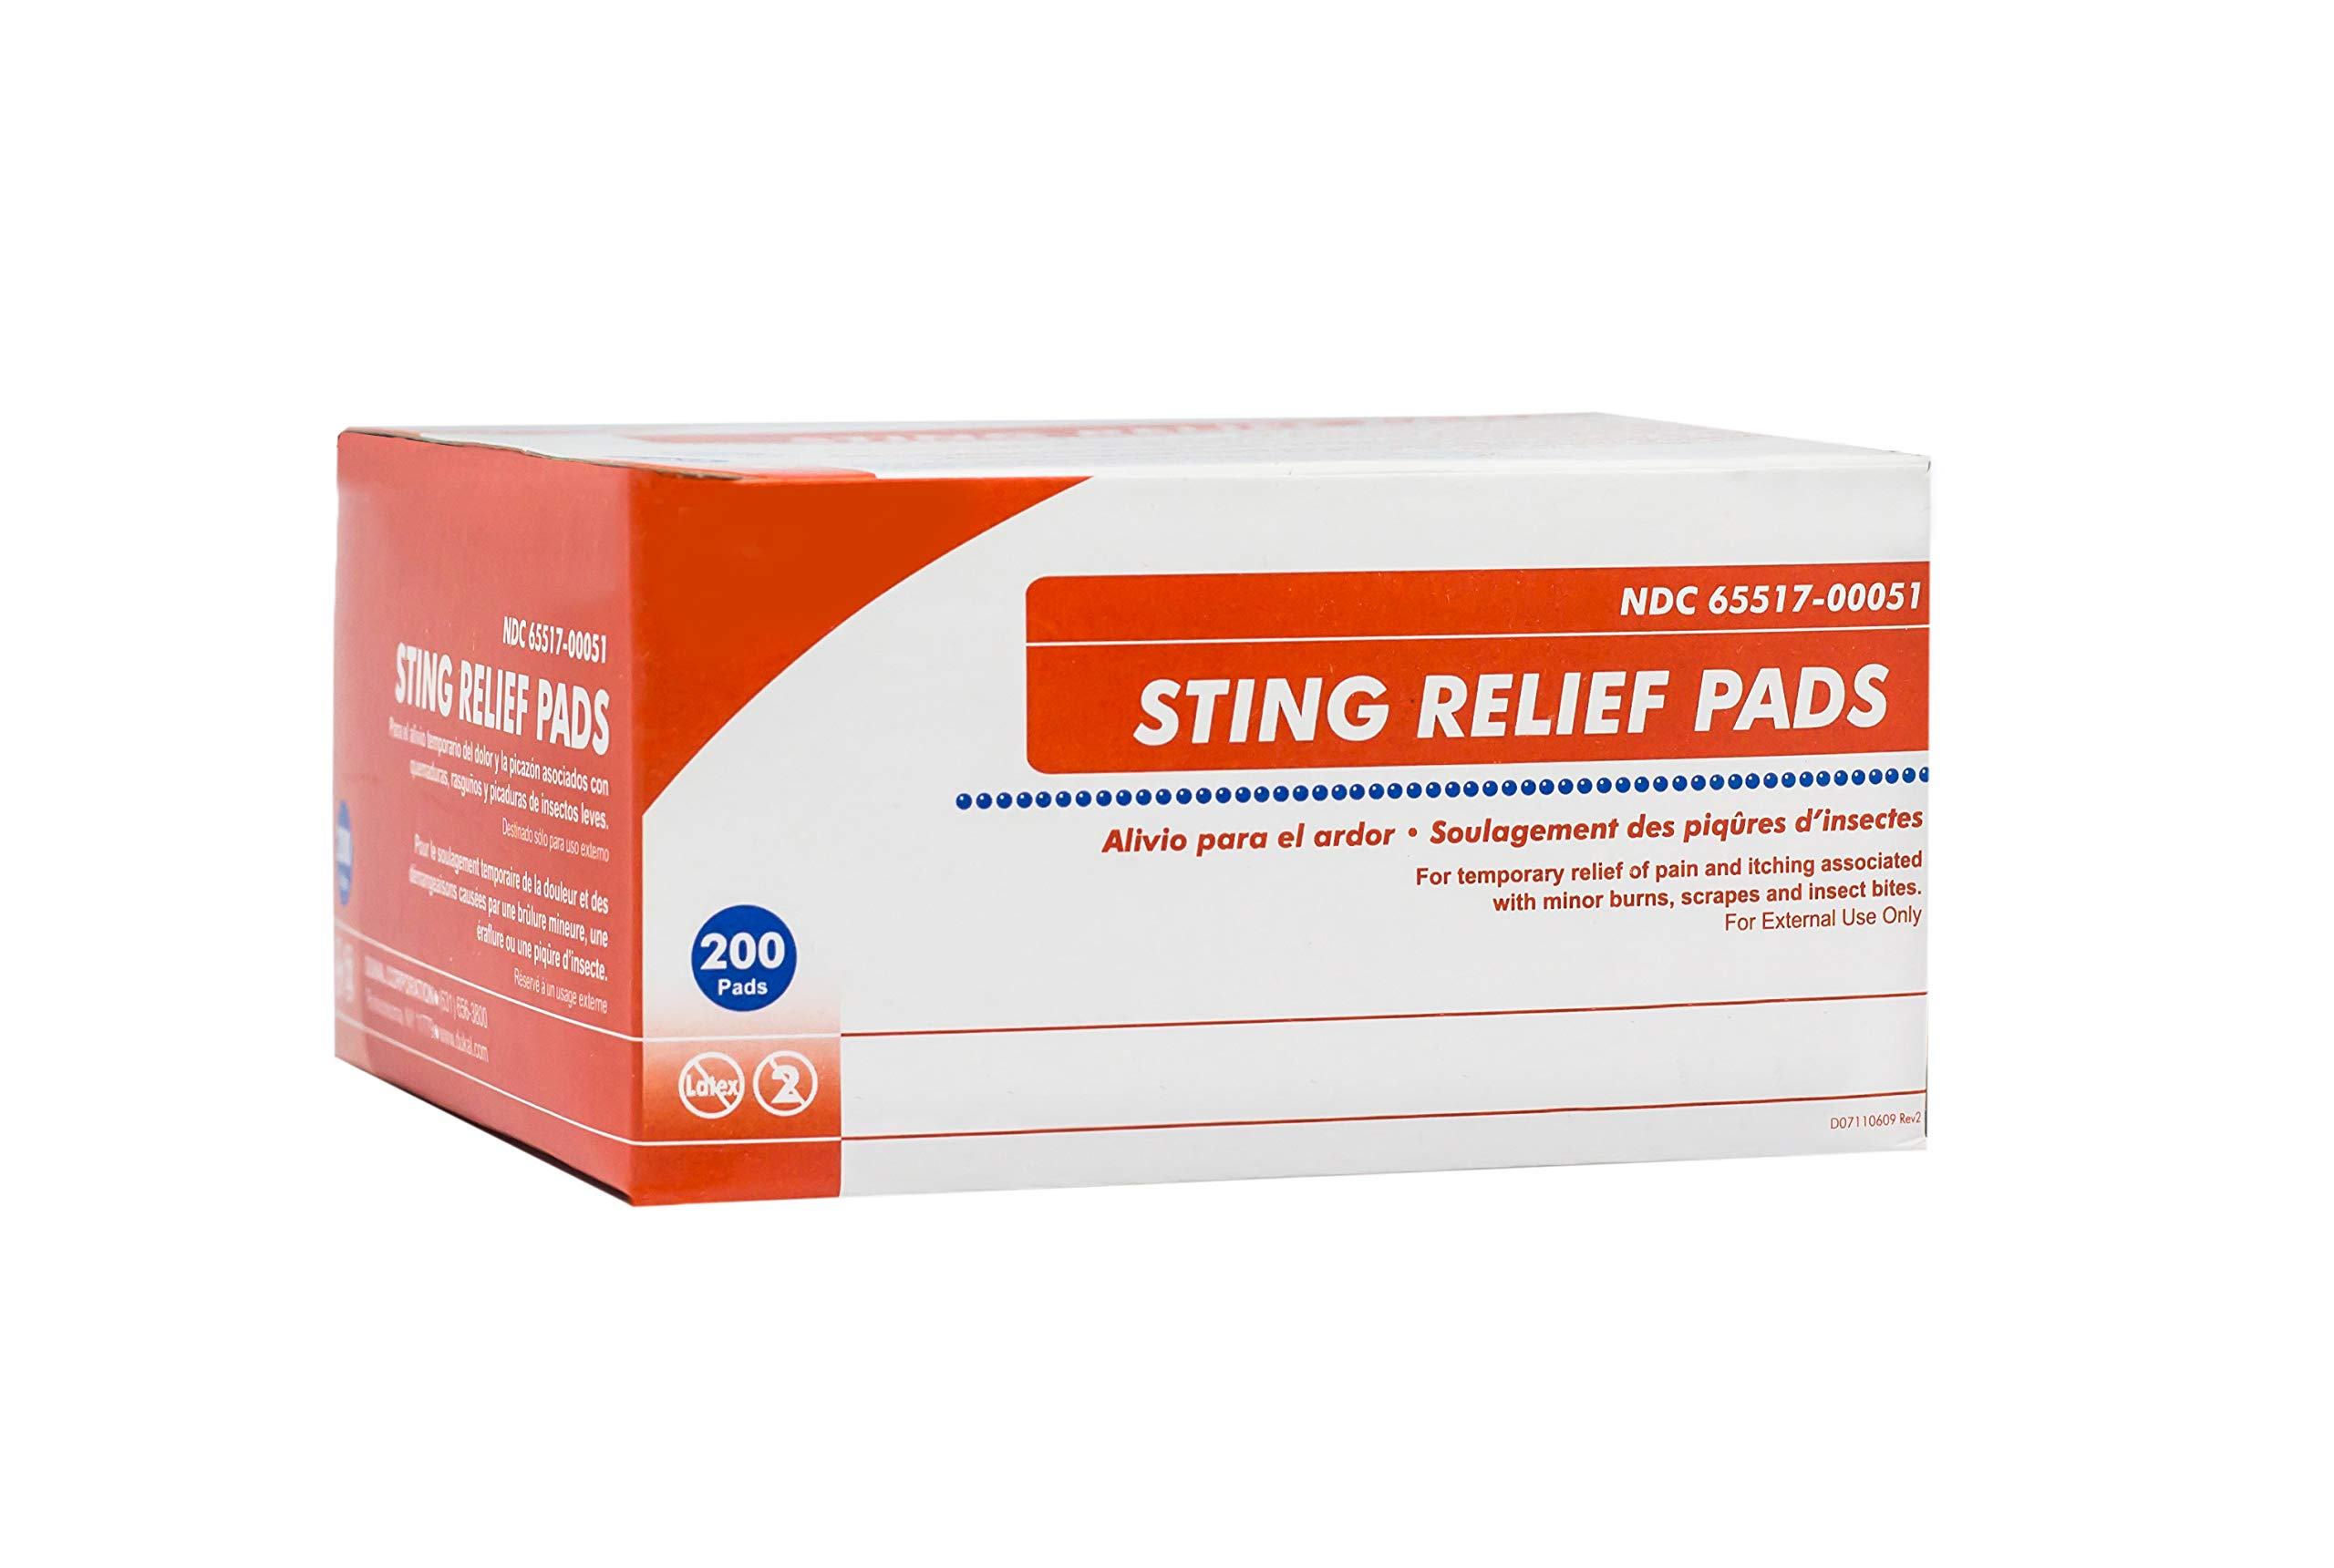 Sting Relief Pads. Case of 3000 Anesthetic Pads for Burns, scrapes, Insect Bites. Individual Pouches. 6% Benzocaine, 60% Isopropyl Alcohol. 2-ply Pain Relief Pads. by AMZ Medical Supply